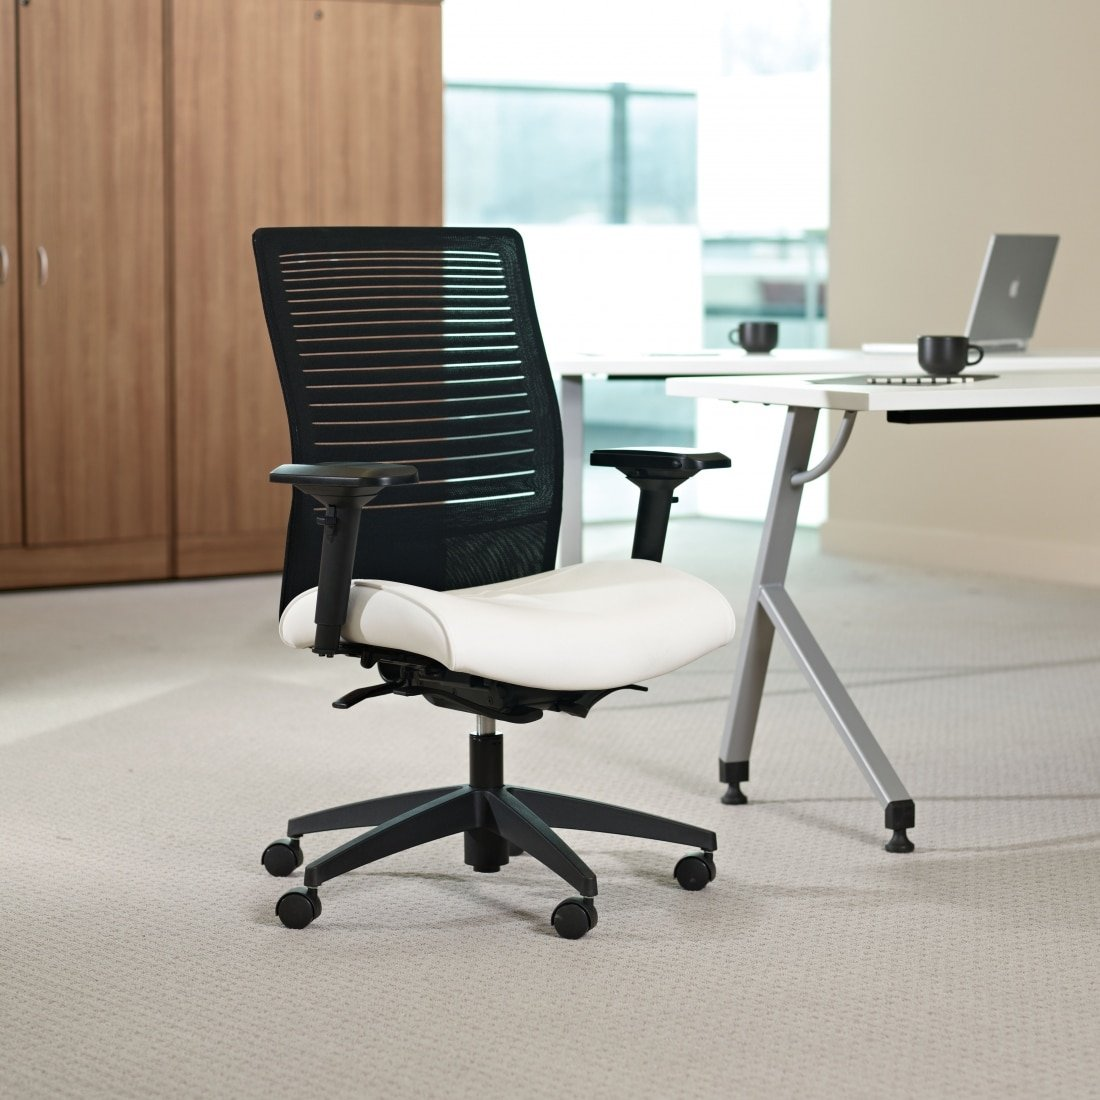 Black and White Mesh Loover Ergonomic mesh conference chair